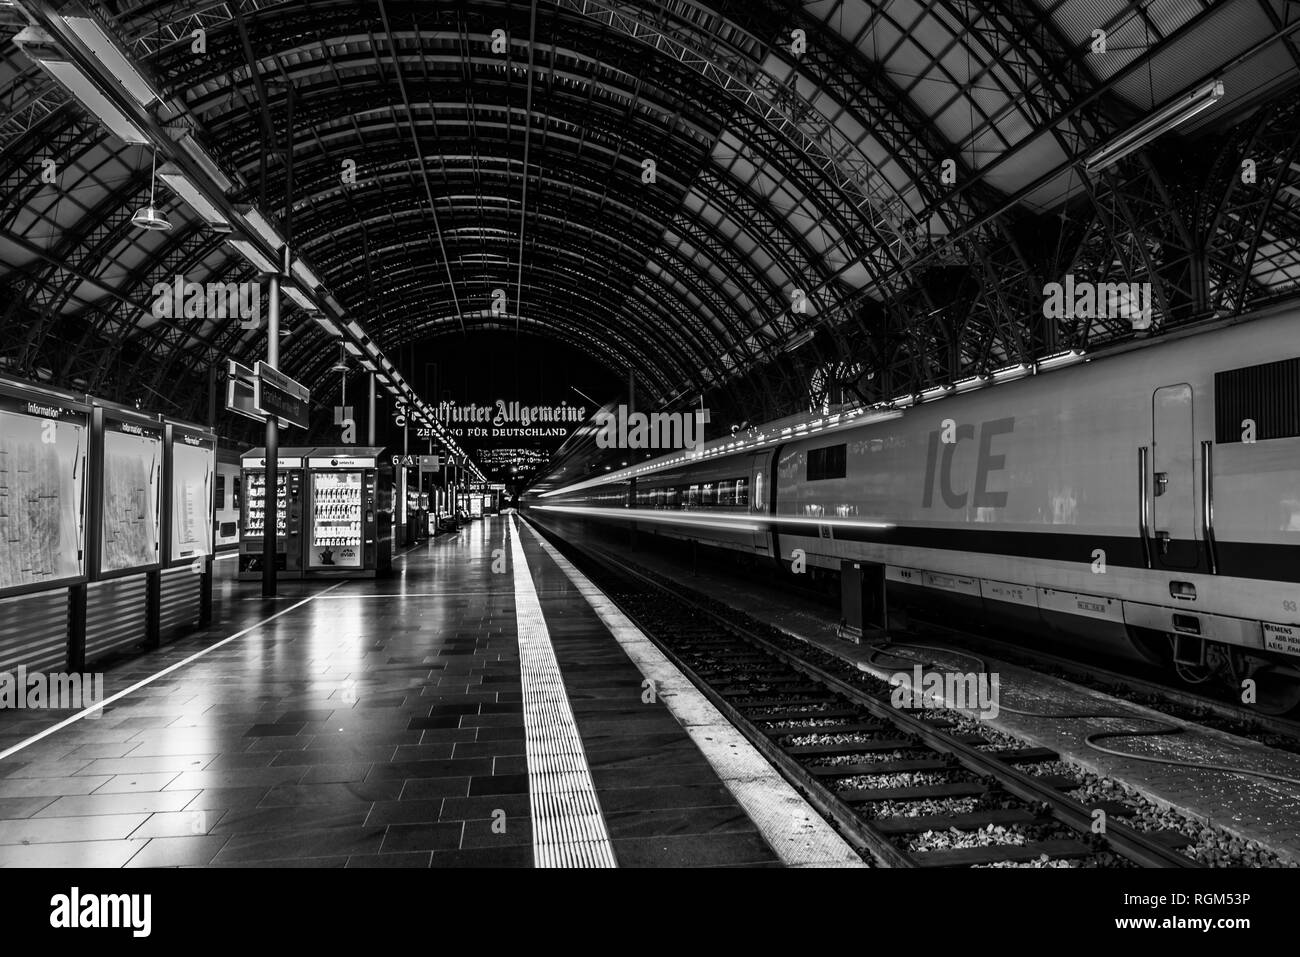 Frankfurt am Main/ Germany - july 22 2017: roof of the main railway station (Hbf) with an ICE train and the platform - Stock Image